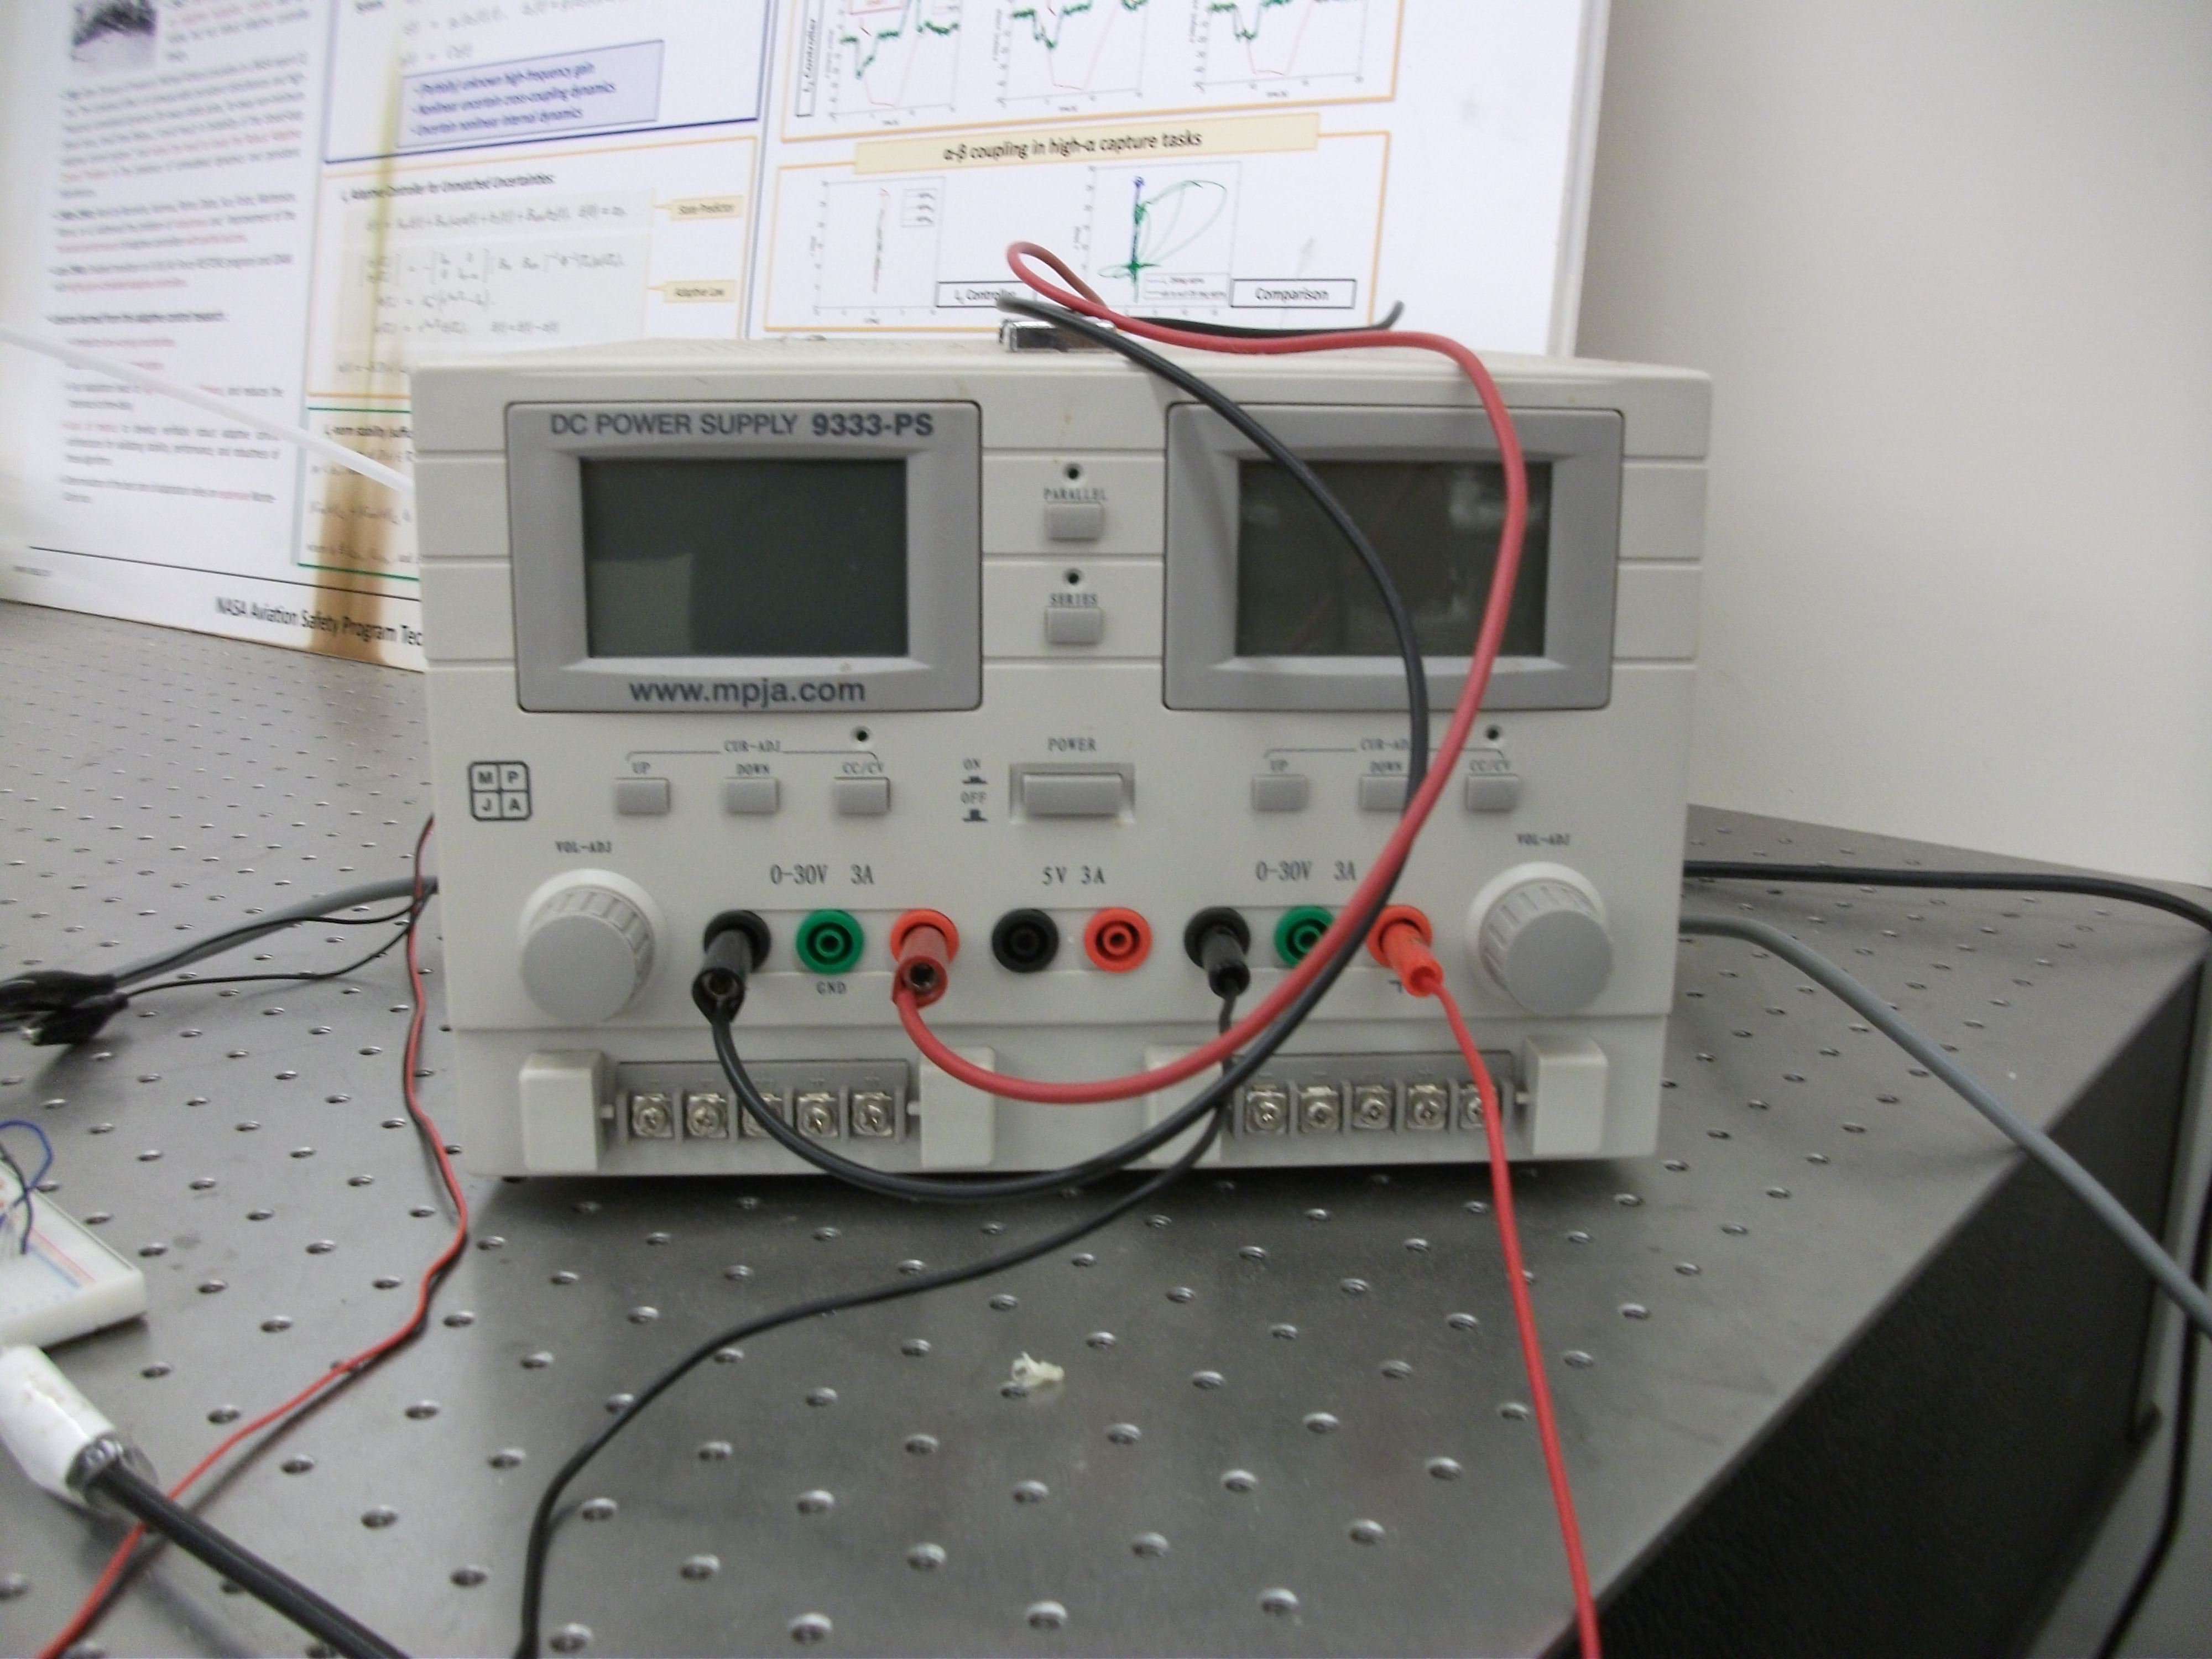 free ebook for how to use grattan oscilloscope